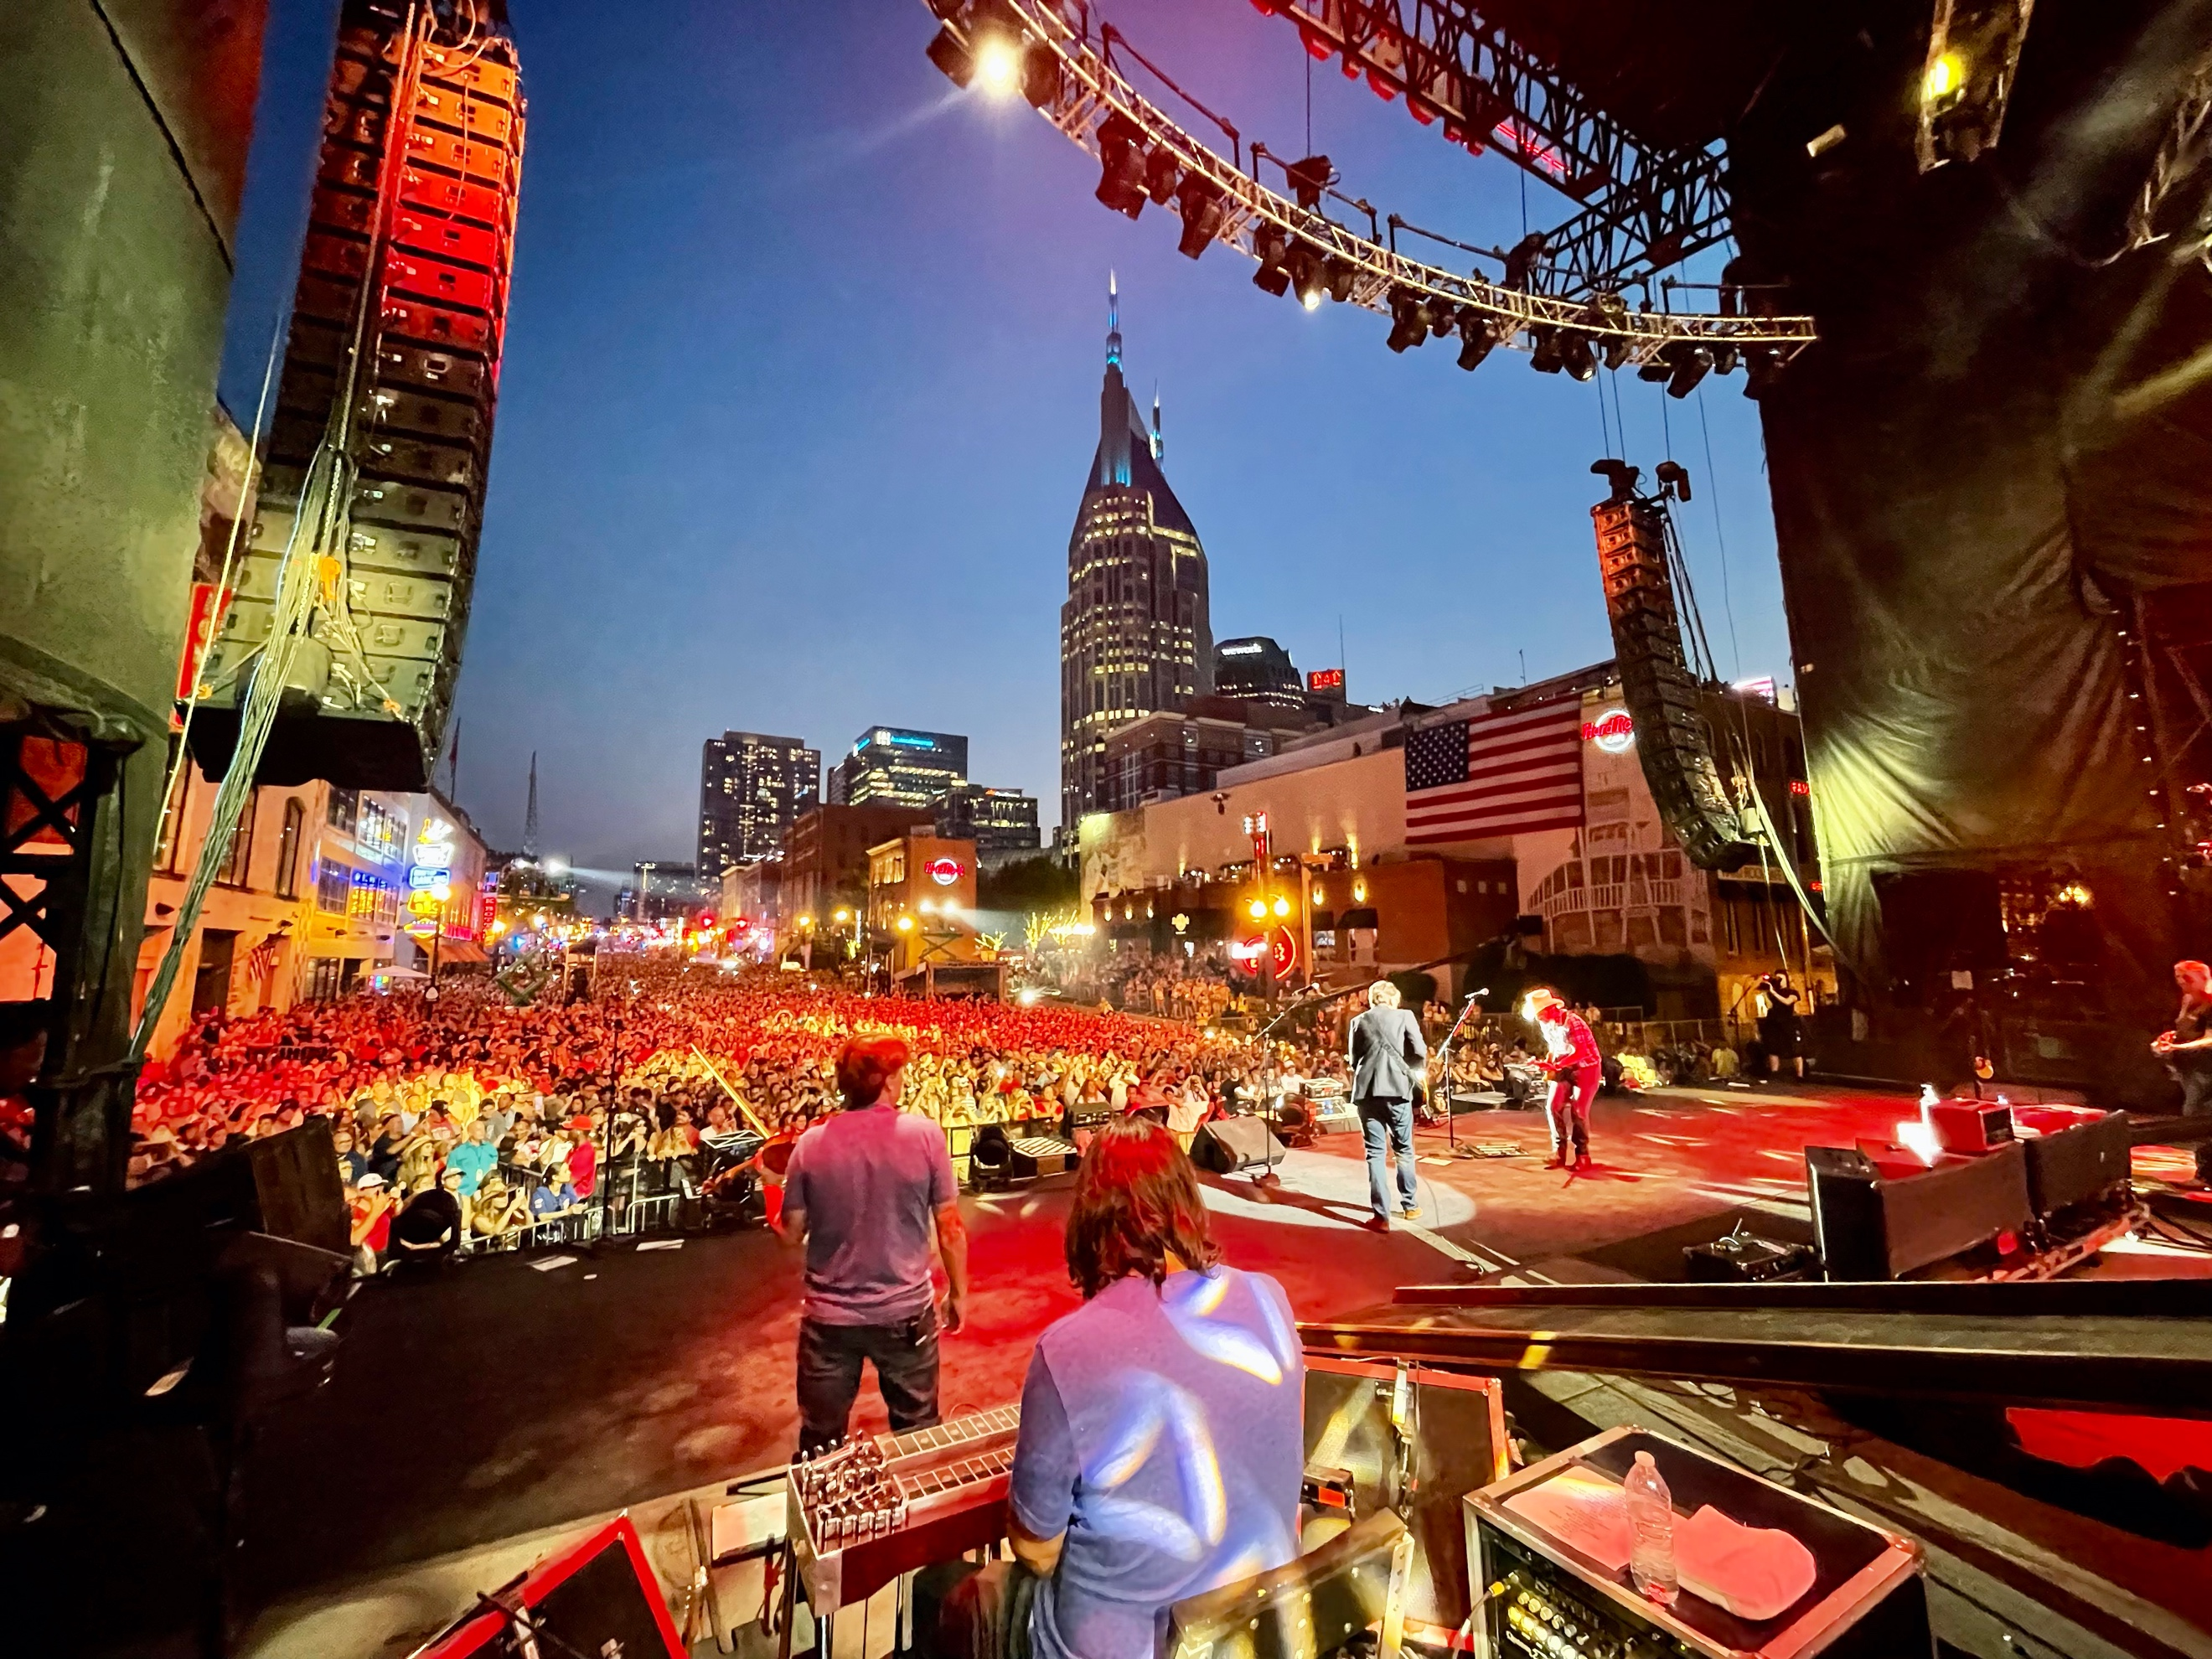 Brad Paisley Celebrates July 4th With 350,000 of His Friends in Downtown Nashville - Let Freedom Sing!